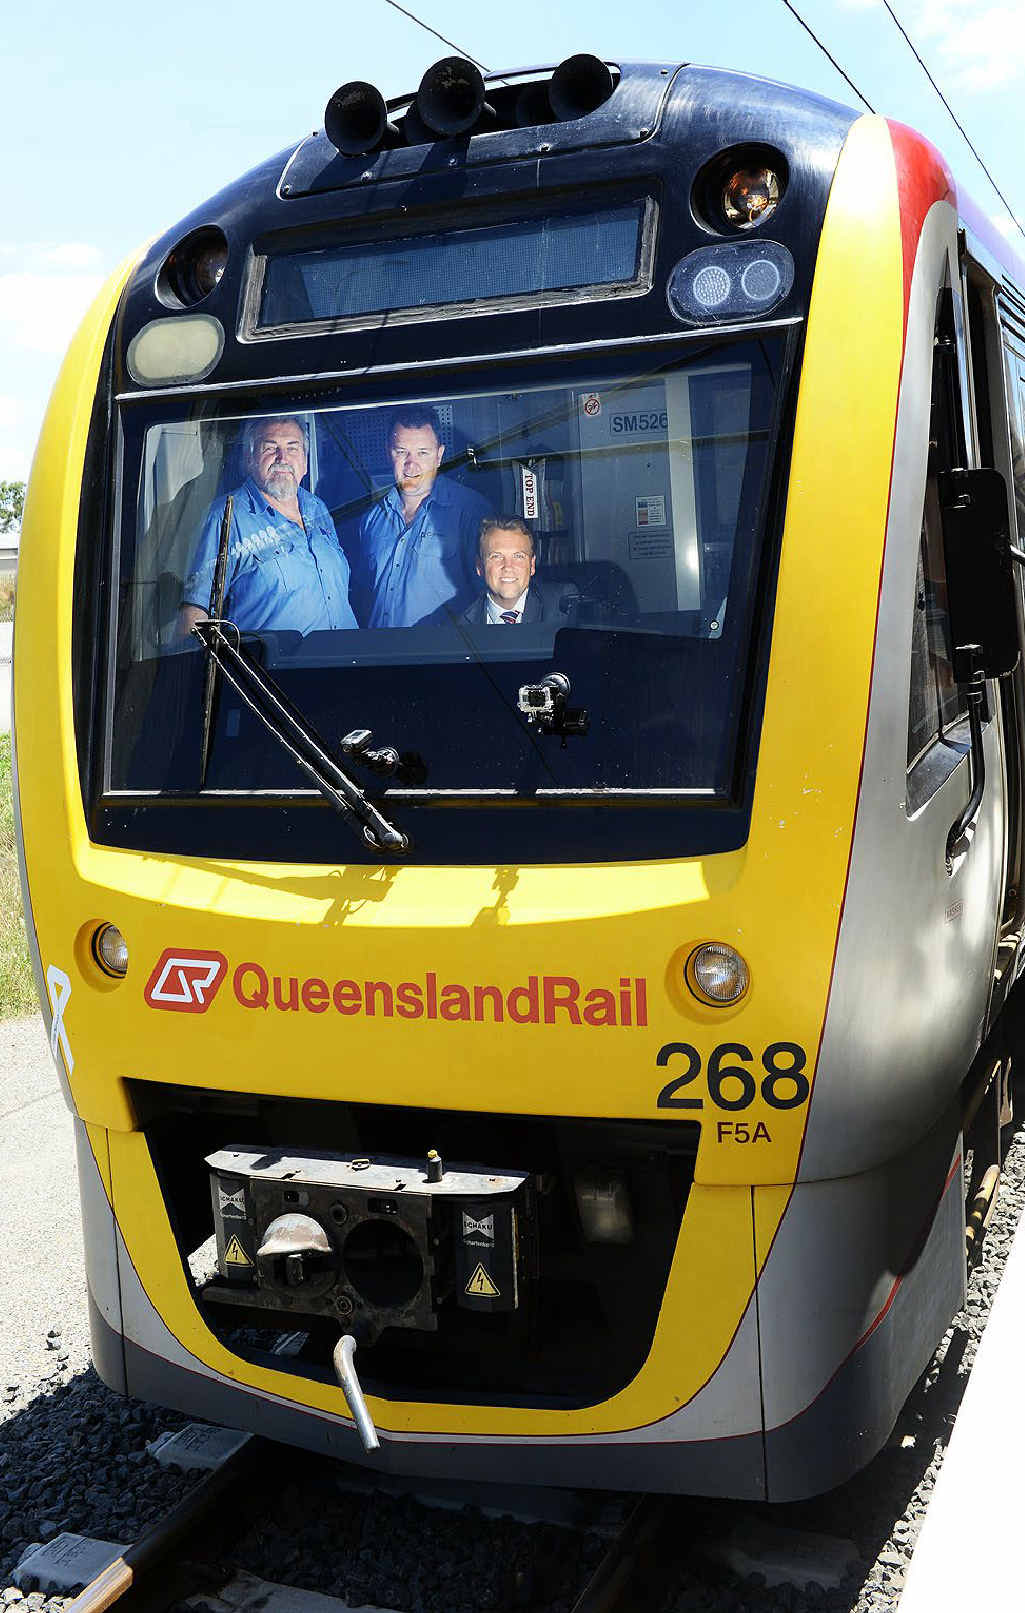 ALL ABOARD: QR trainers Peter Cherry and Troy Prebble with Minister for Transport and Main Roads Scott Emerson on board the first train to Springfield Central on Wednesday.